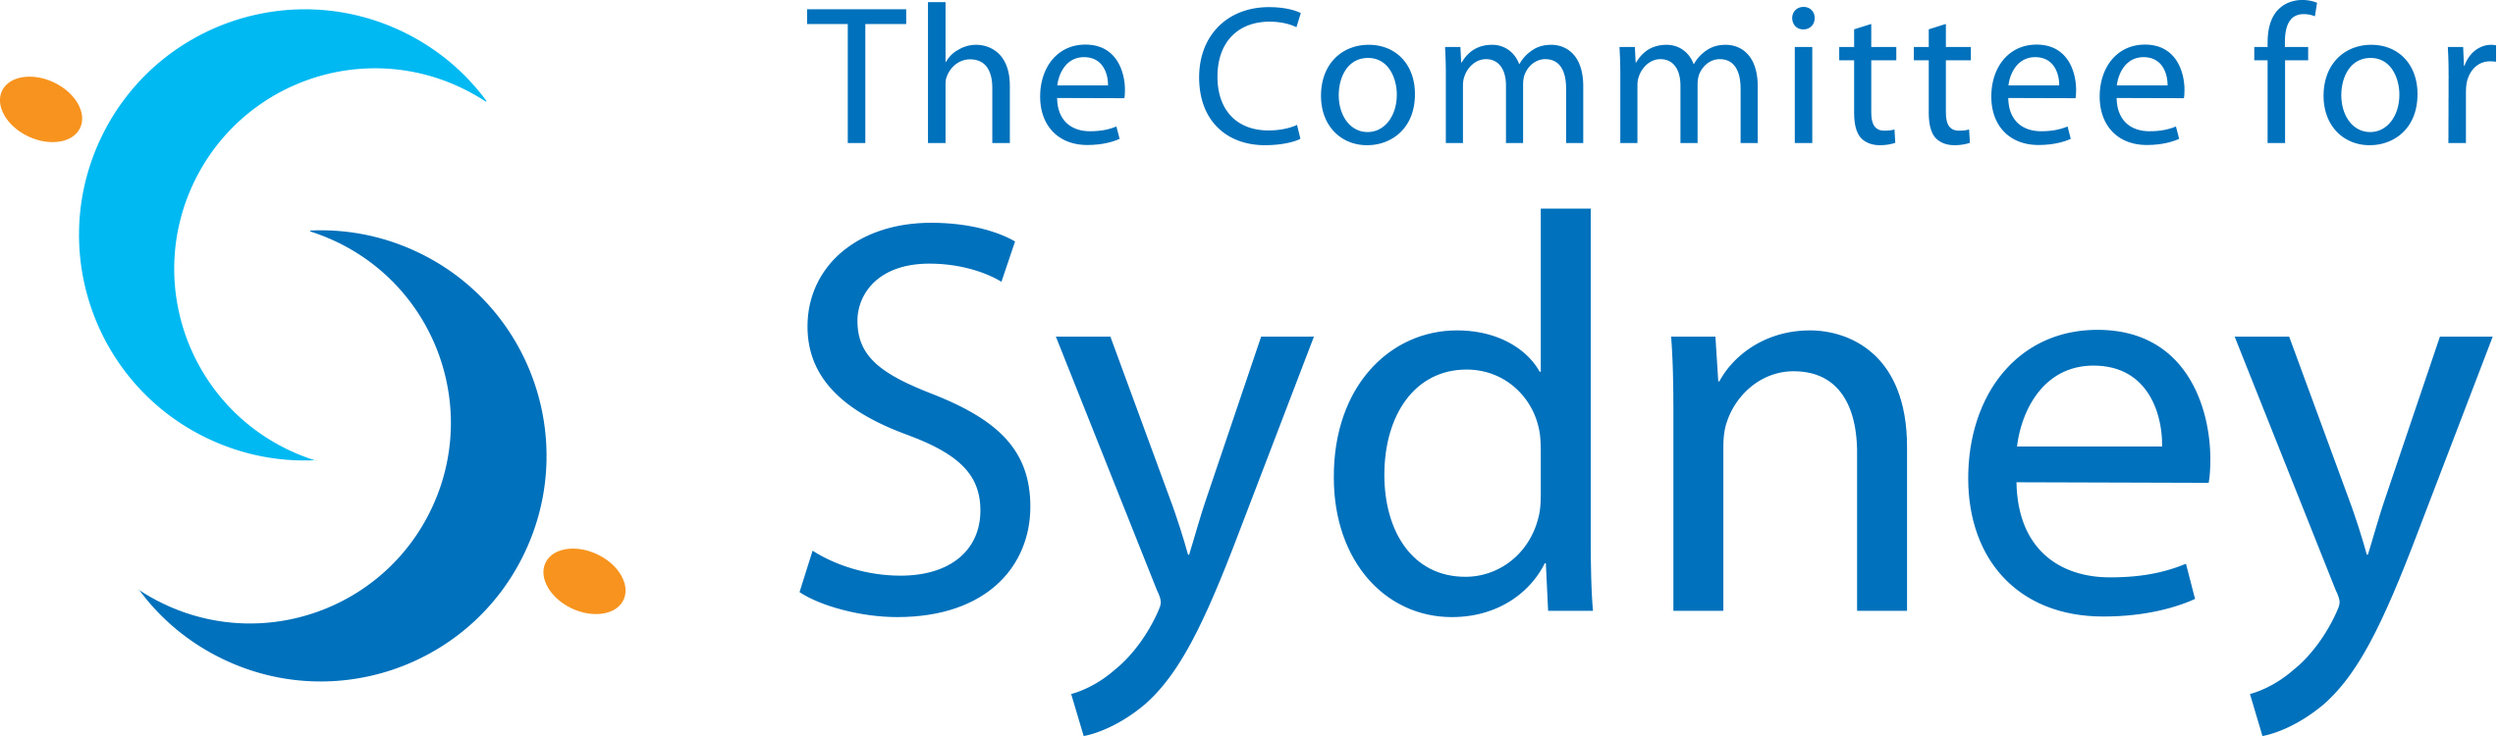 004 Committee-for-Sydney-Colour.jpg